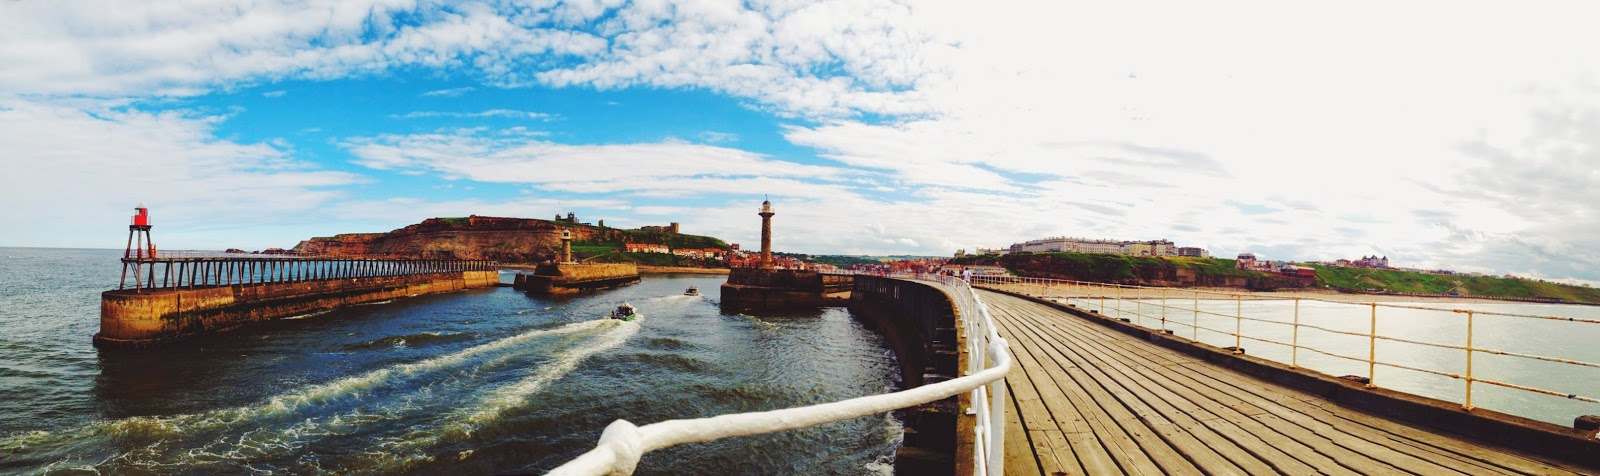 Whitby iPhone Panaroma